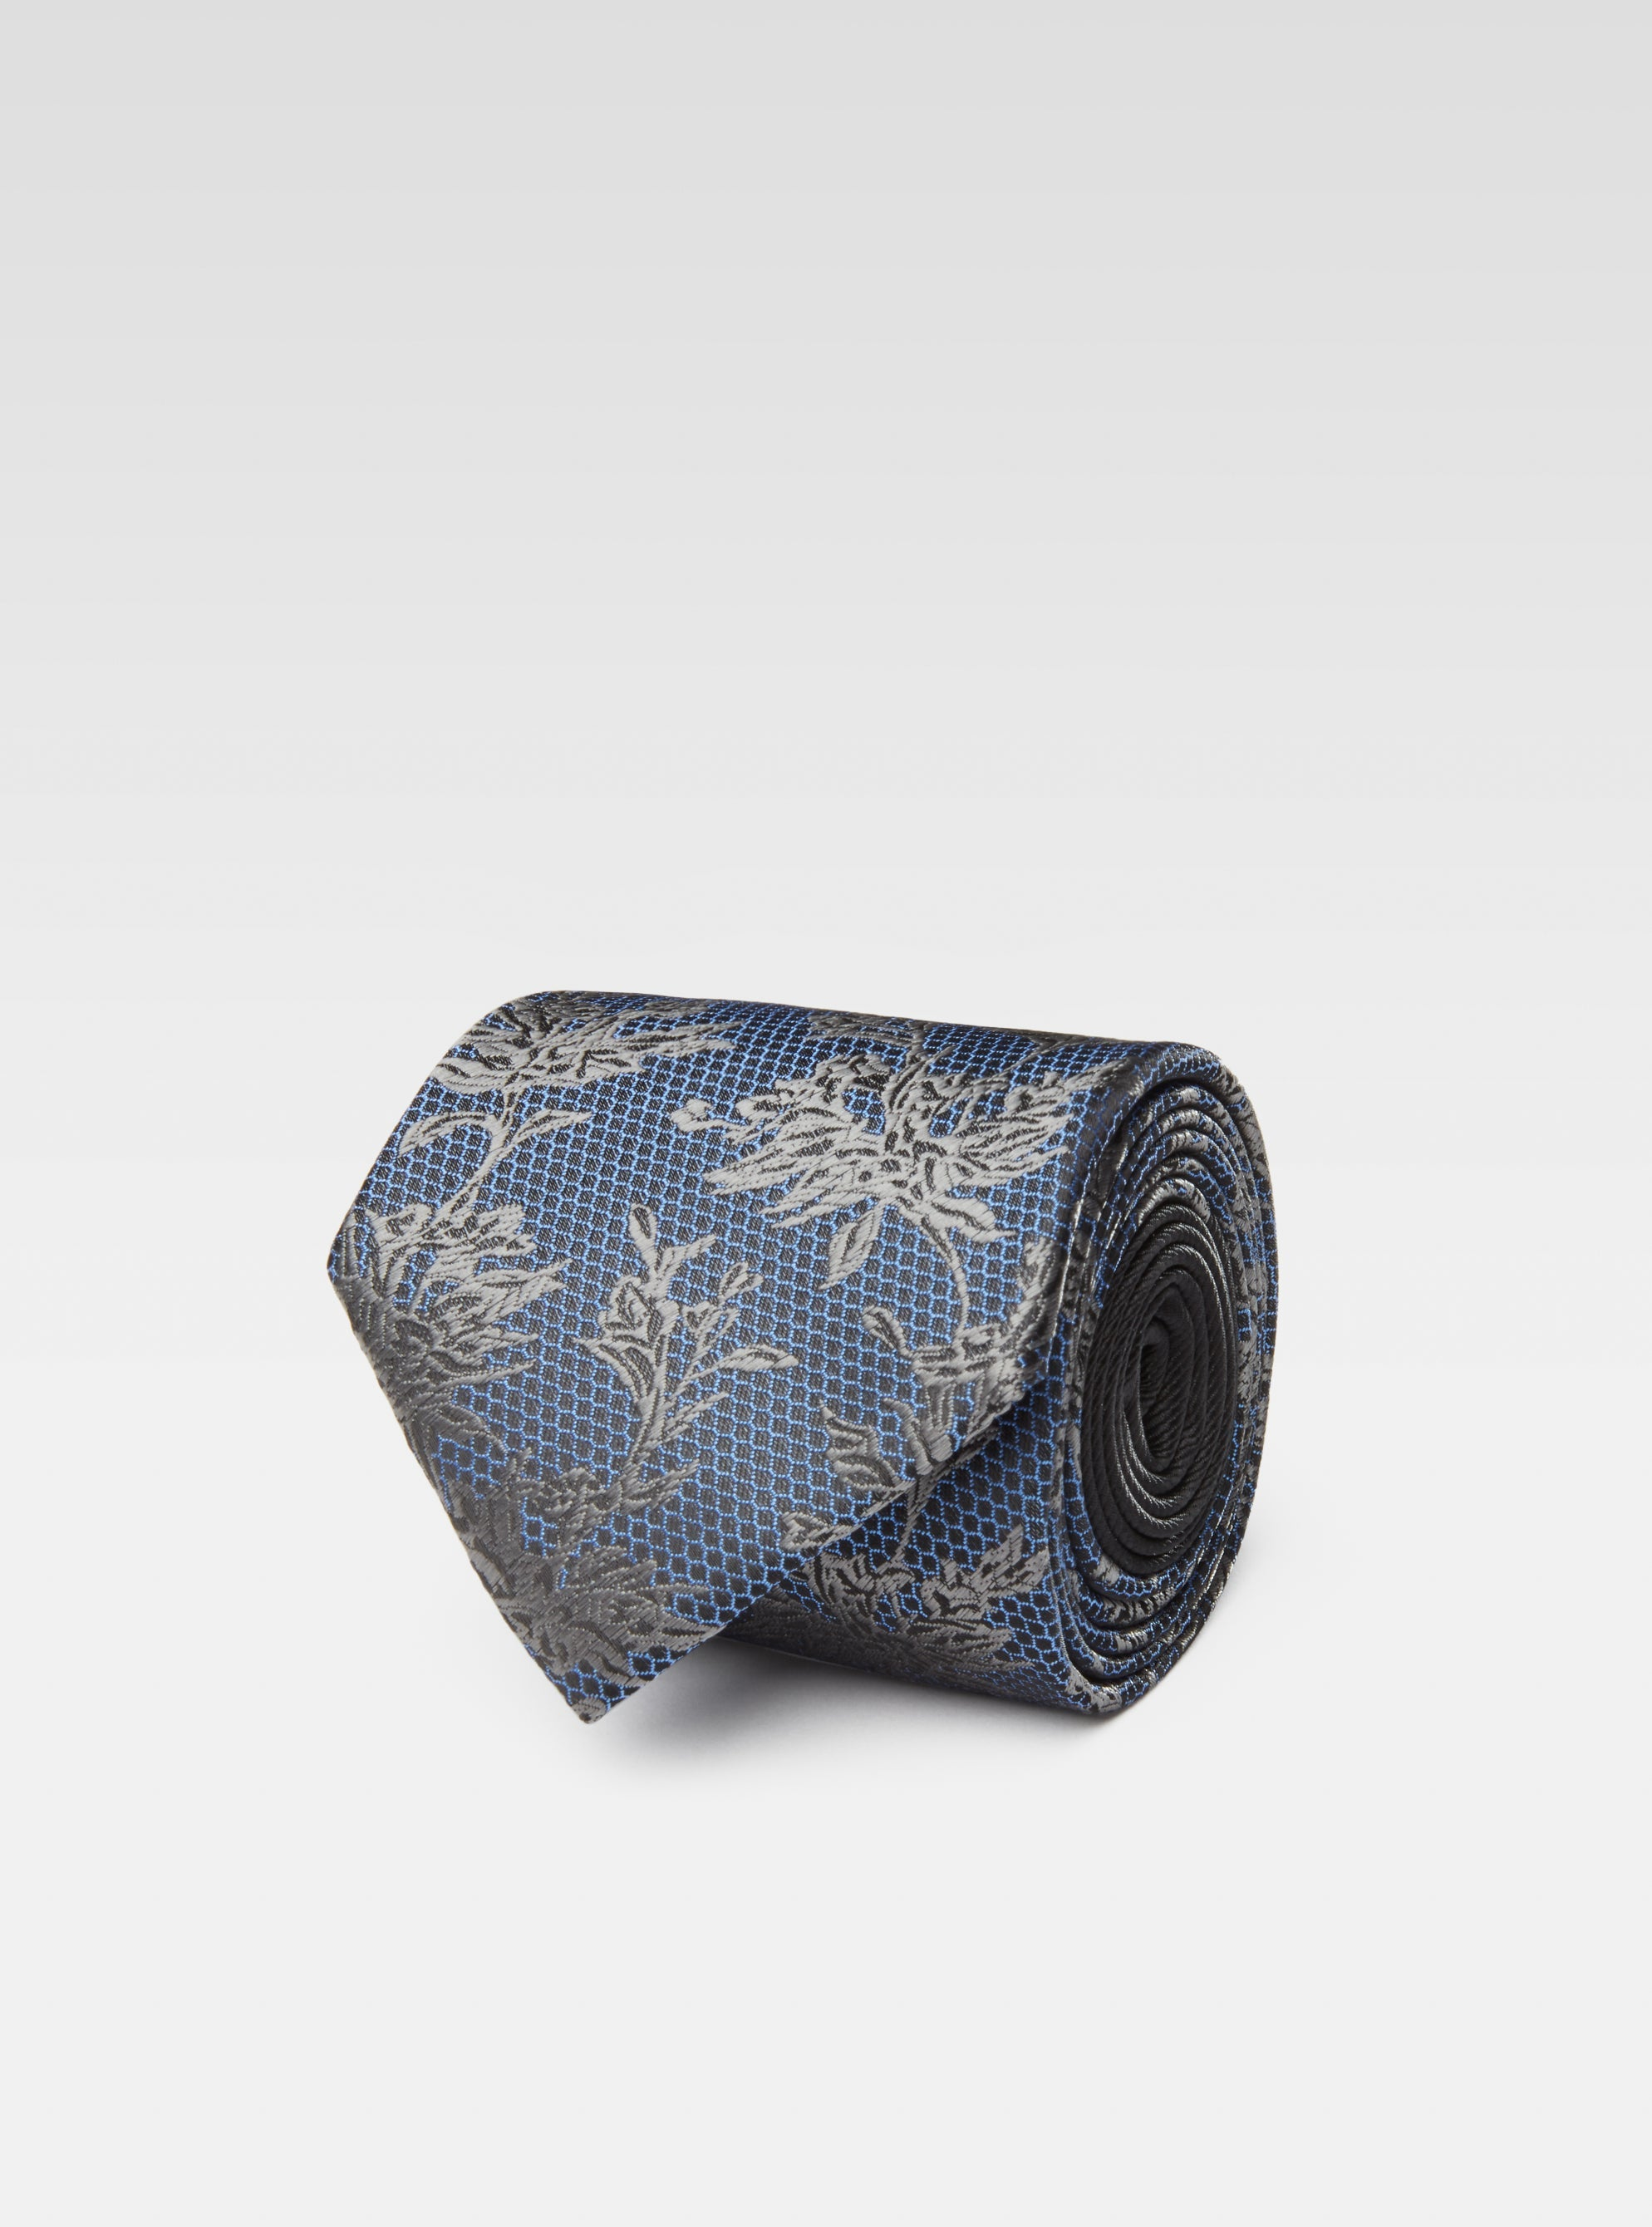 Branches over honeycomb woven neck tie